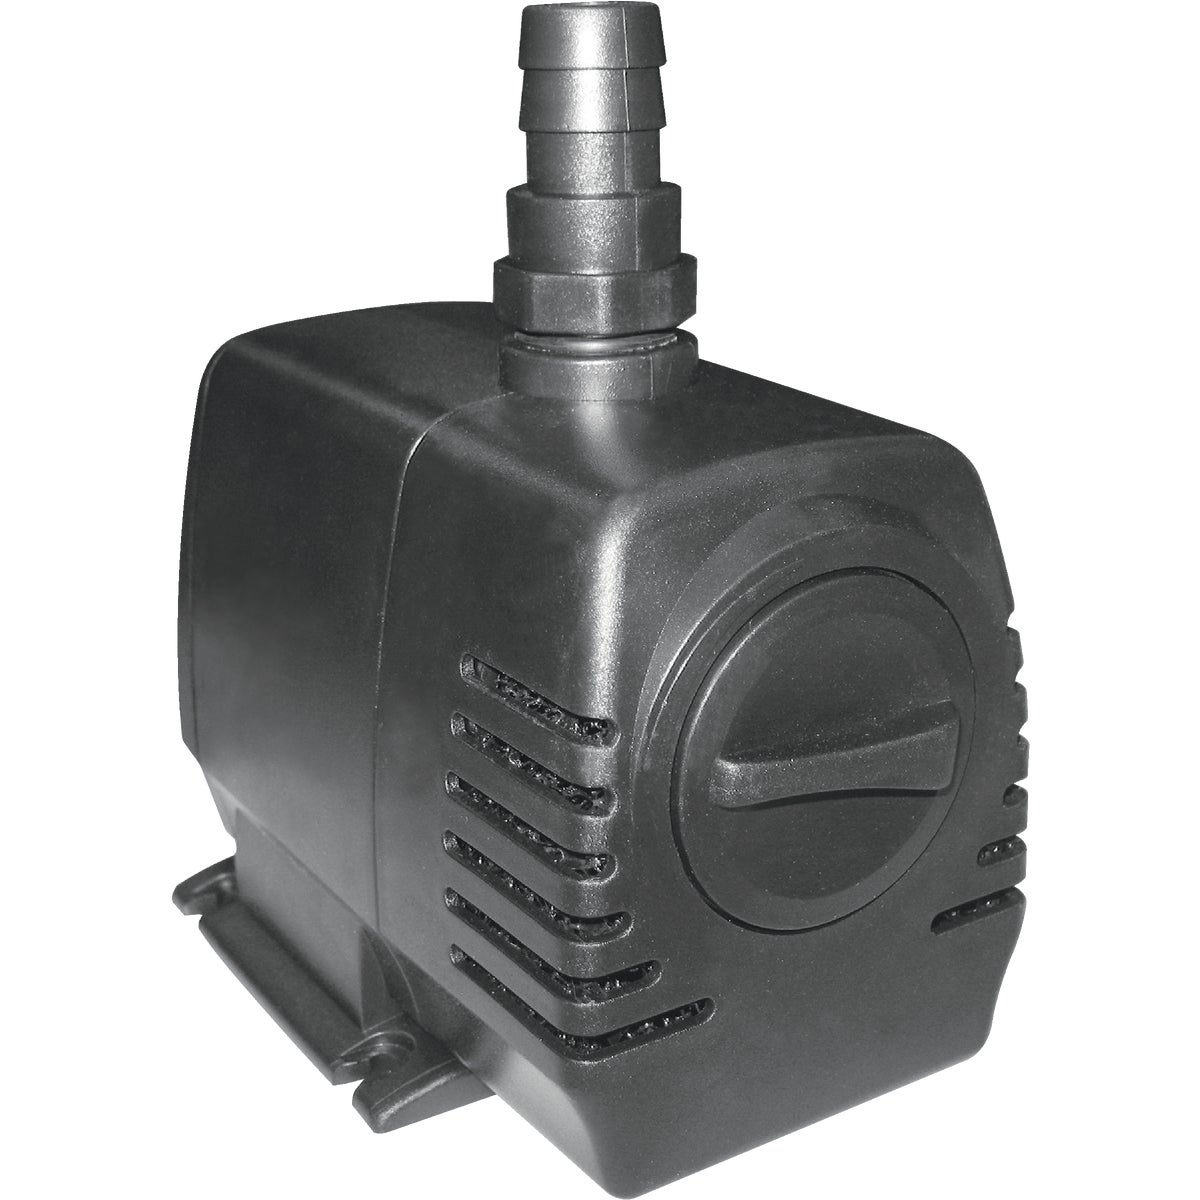 285-525GPH POND PUMP - PF525 by Geo Global Partners